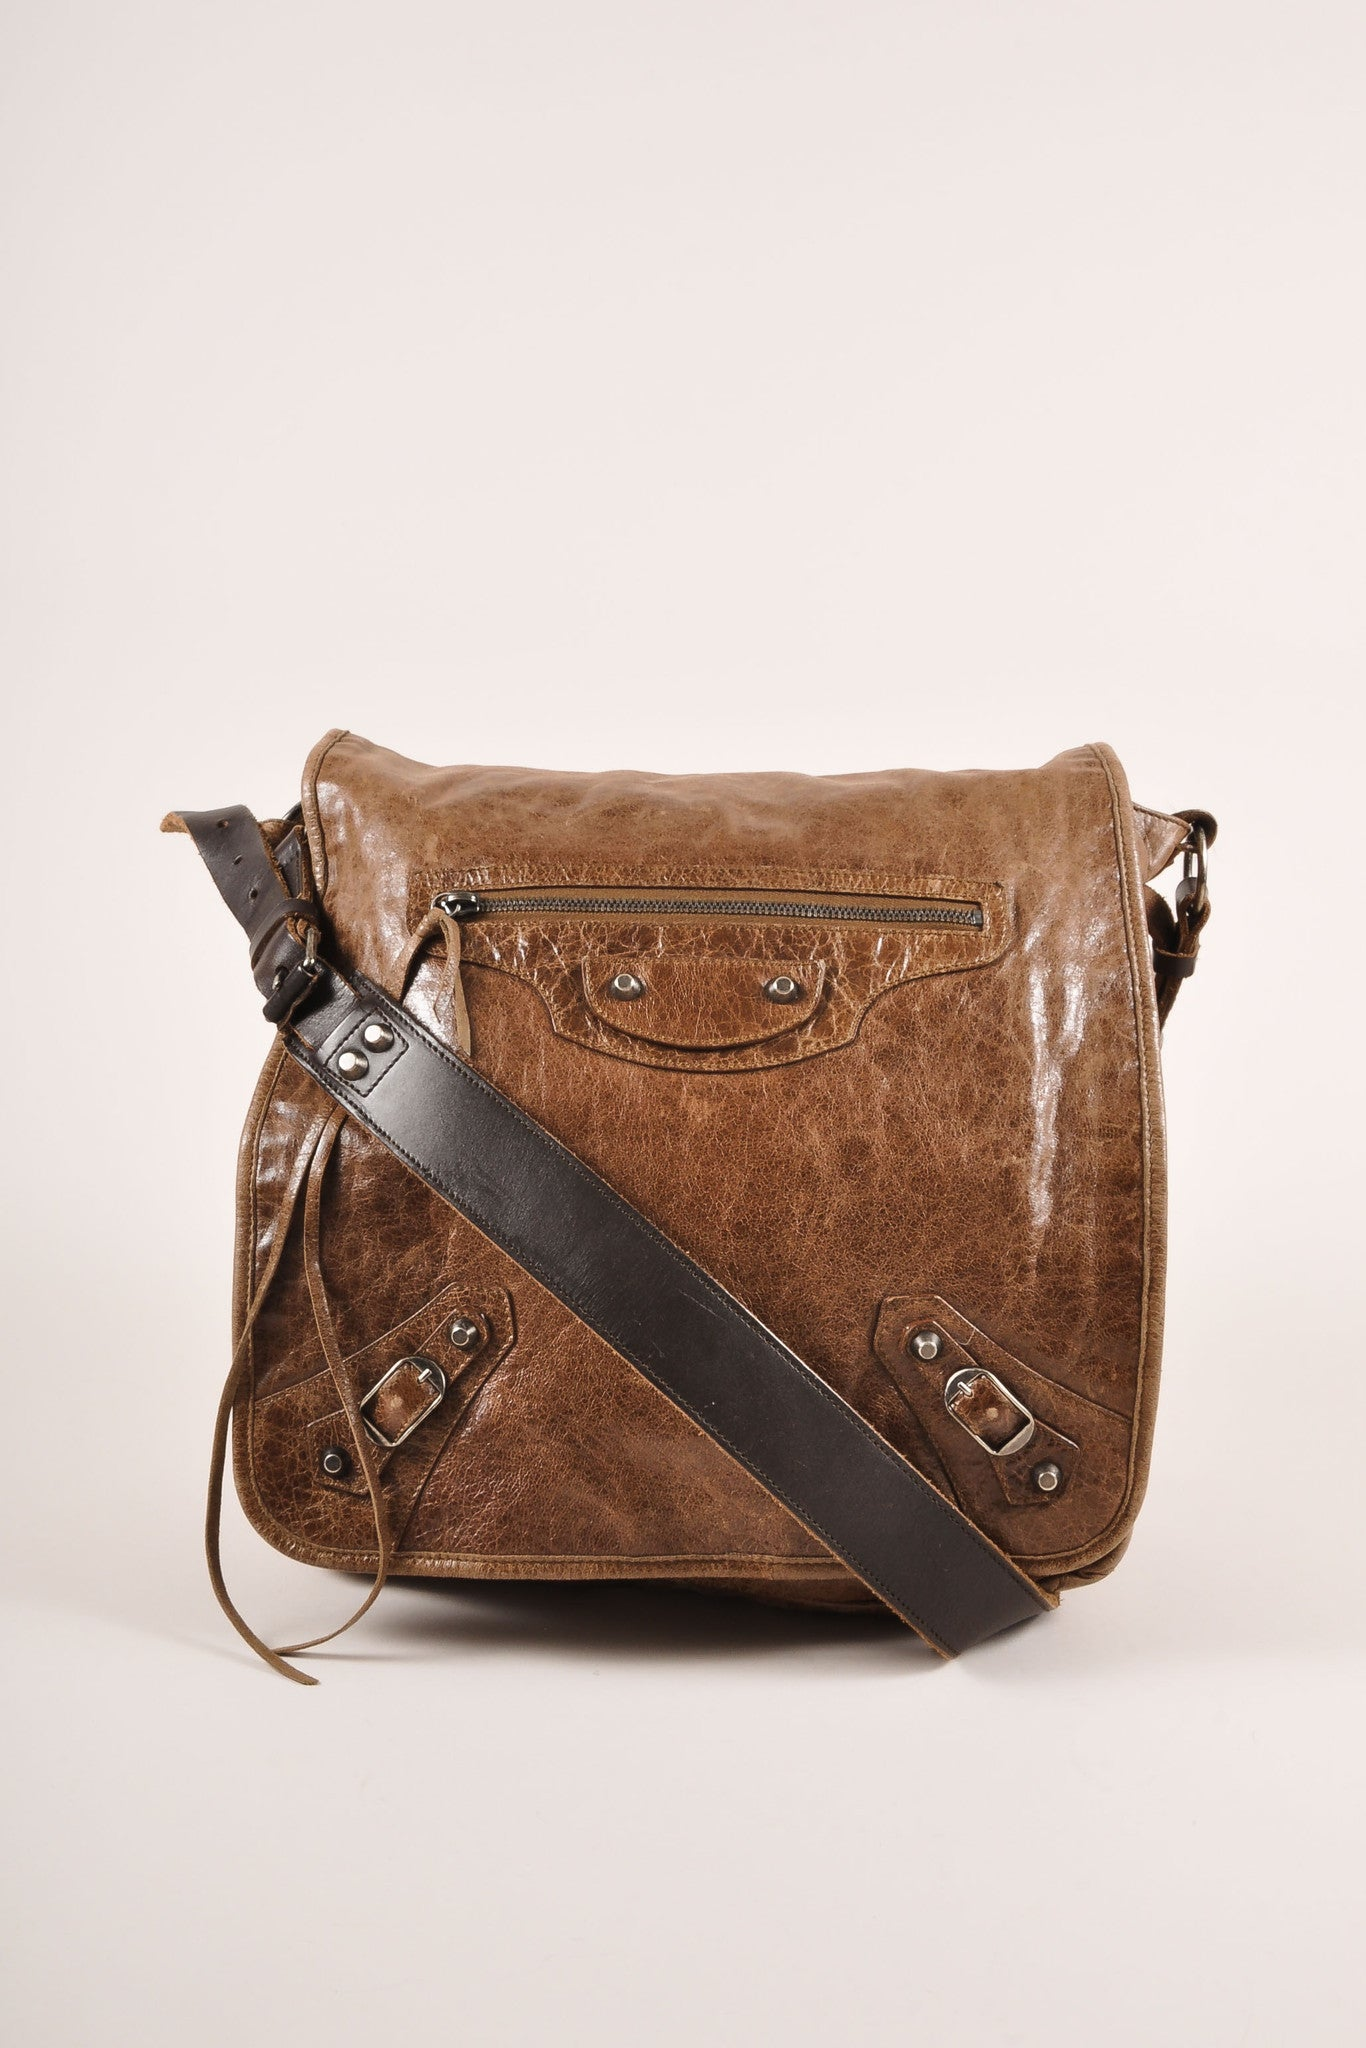 Balenciaga Brown Distressed Leather Messenger Bag Frontview